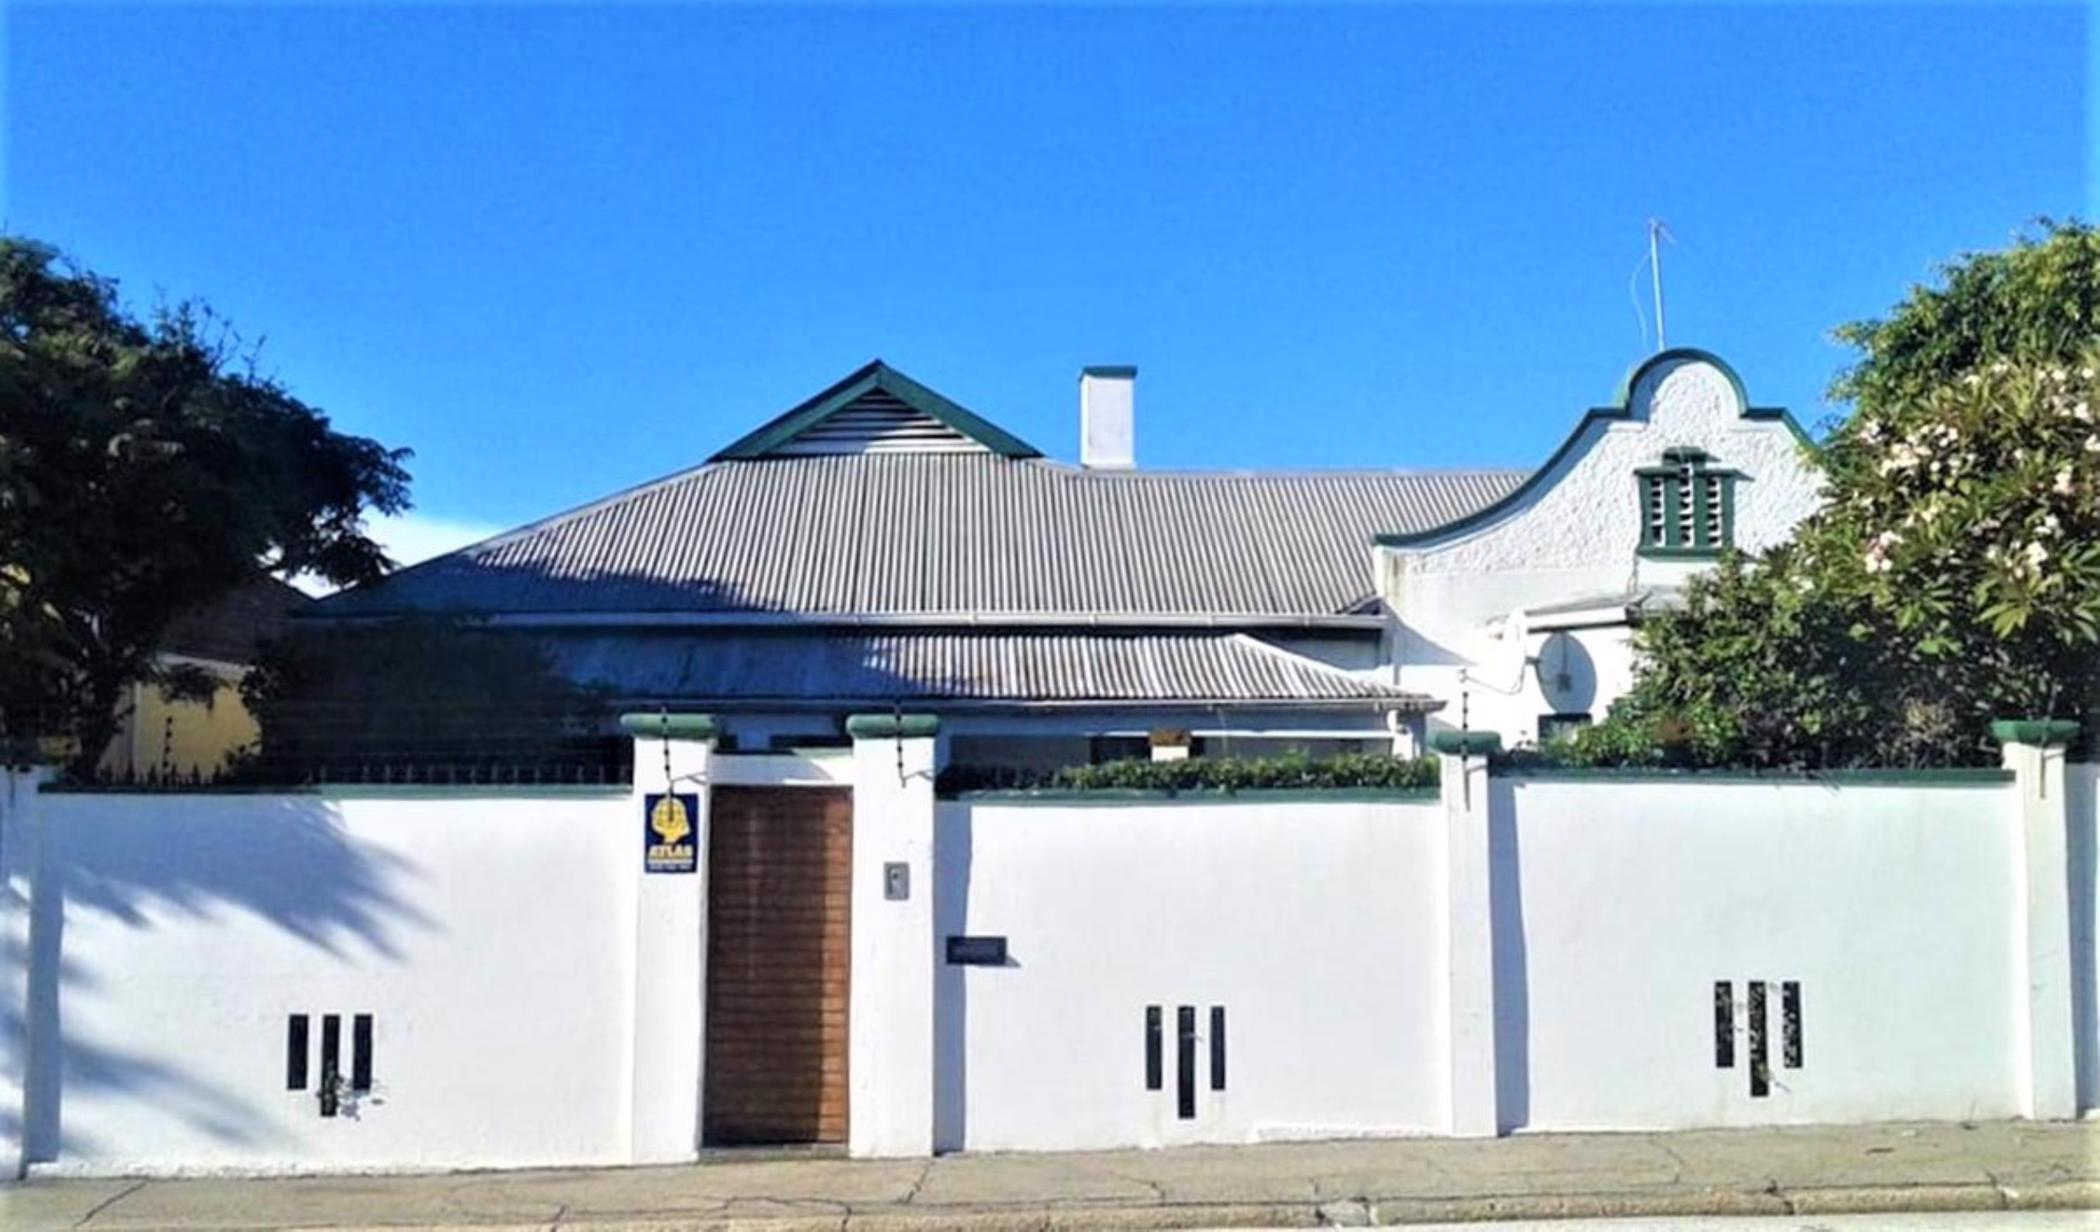 https://listing.pamgolding.co.za/images/properties/201810/1094686/H/1094686_H_15.jpg